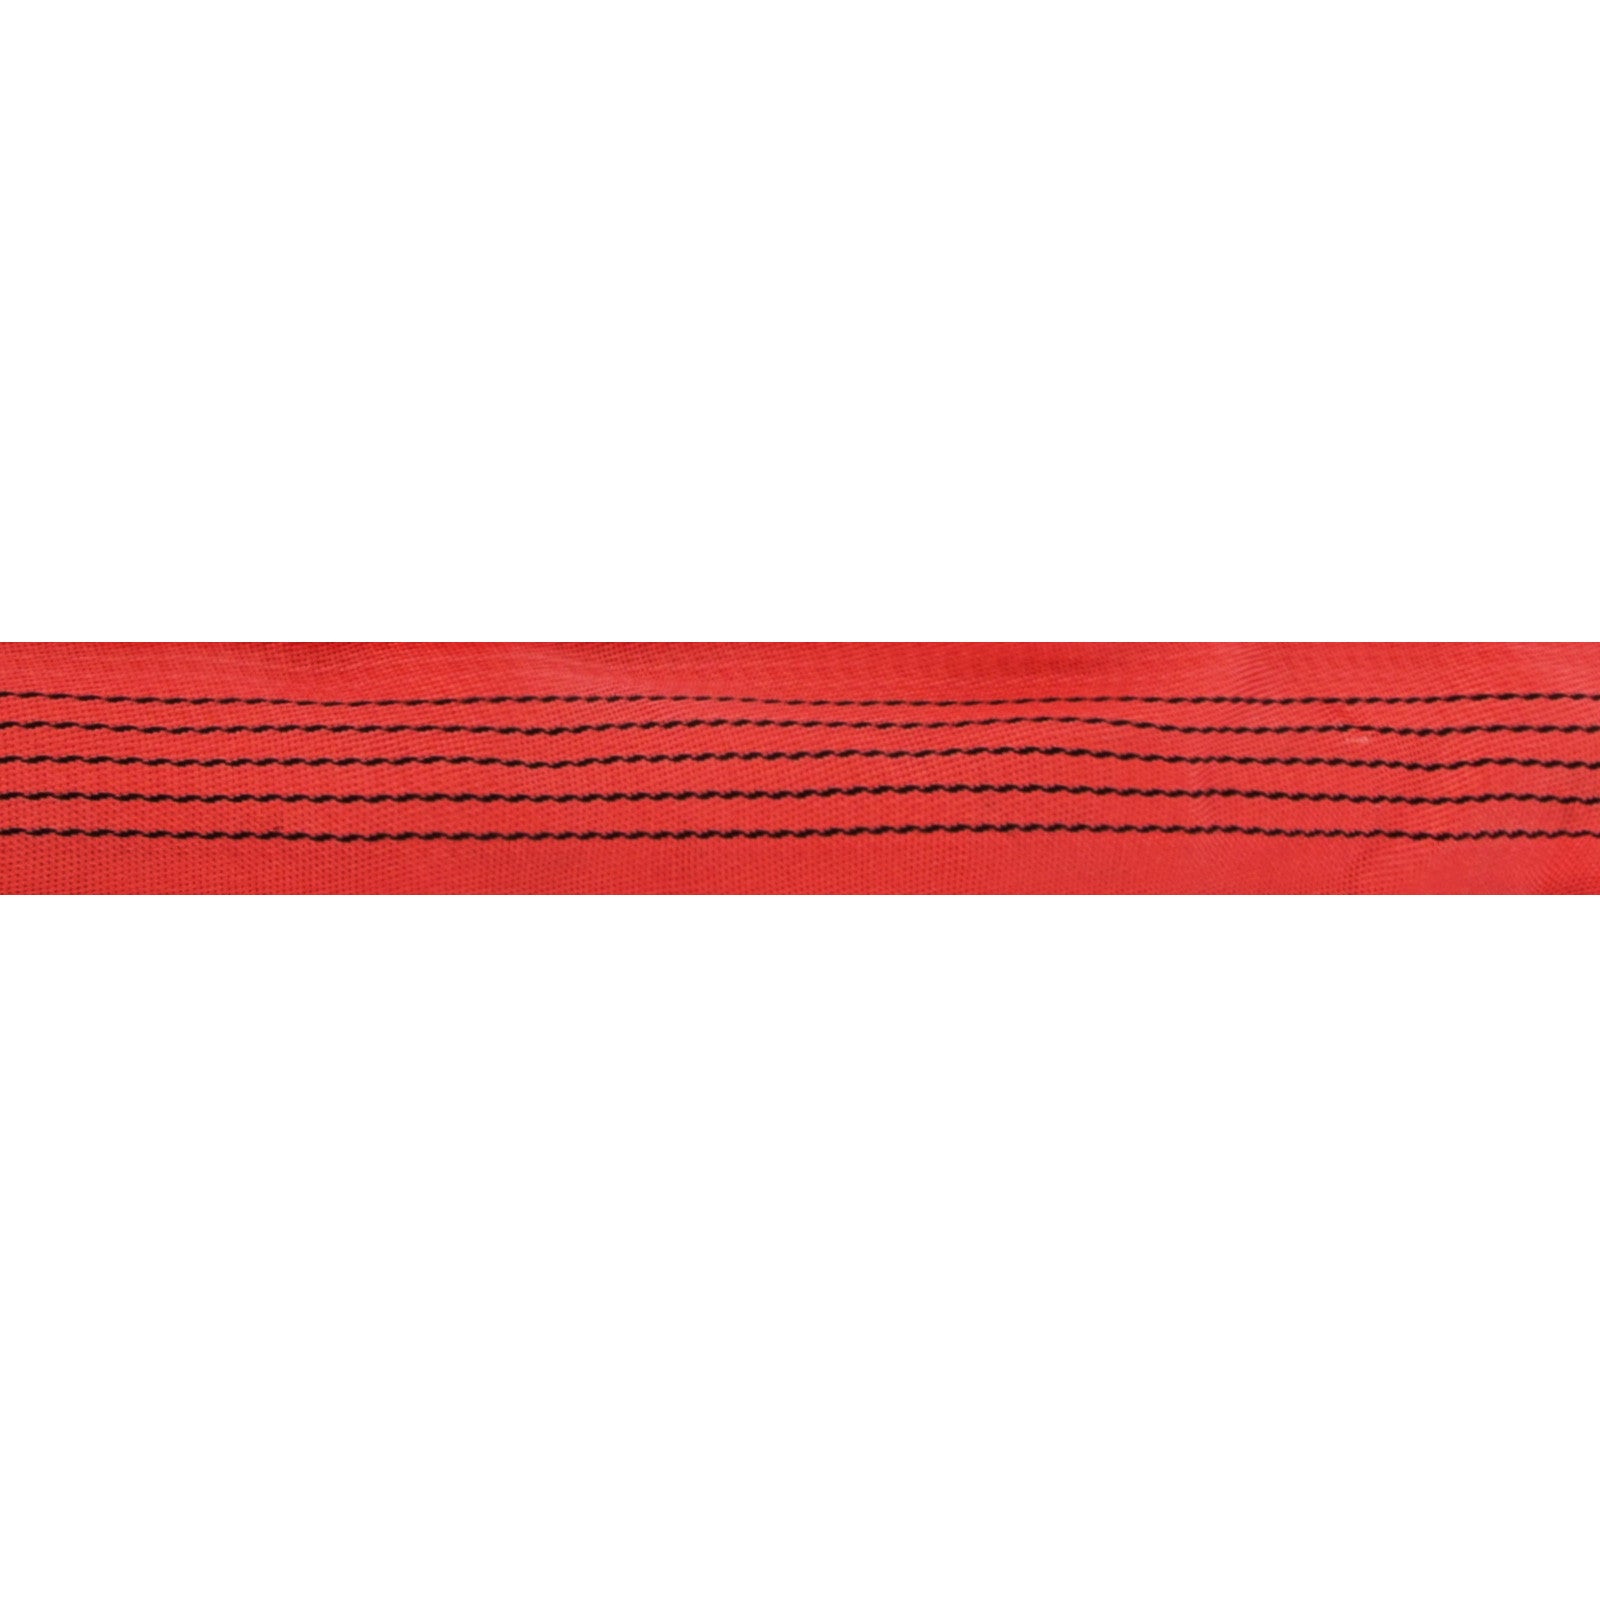 Red Endless Round Lifting Sling 9.8' 11000lbs Heavy Duty